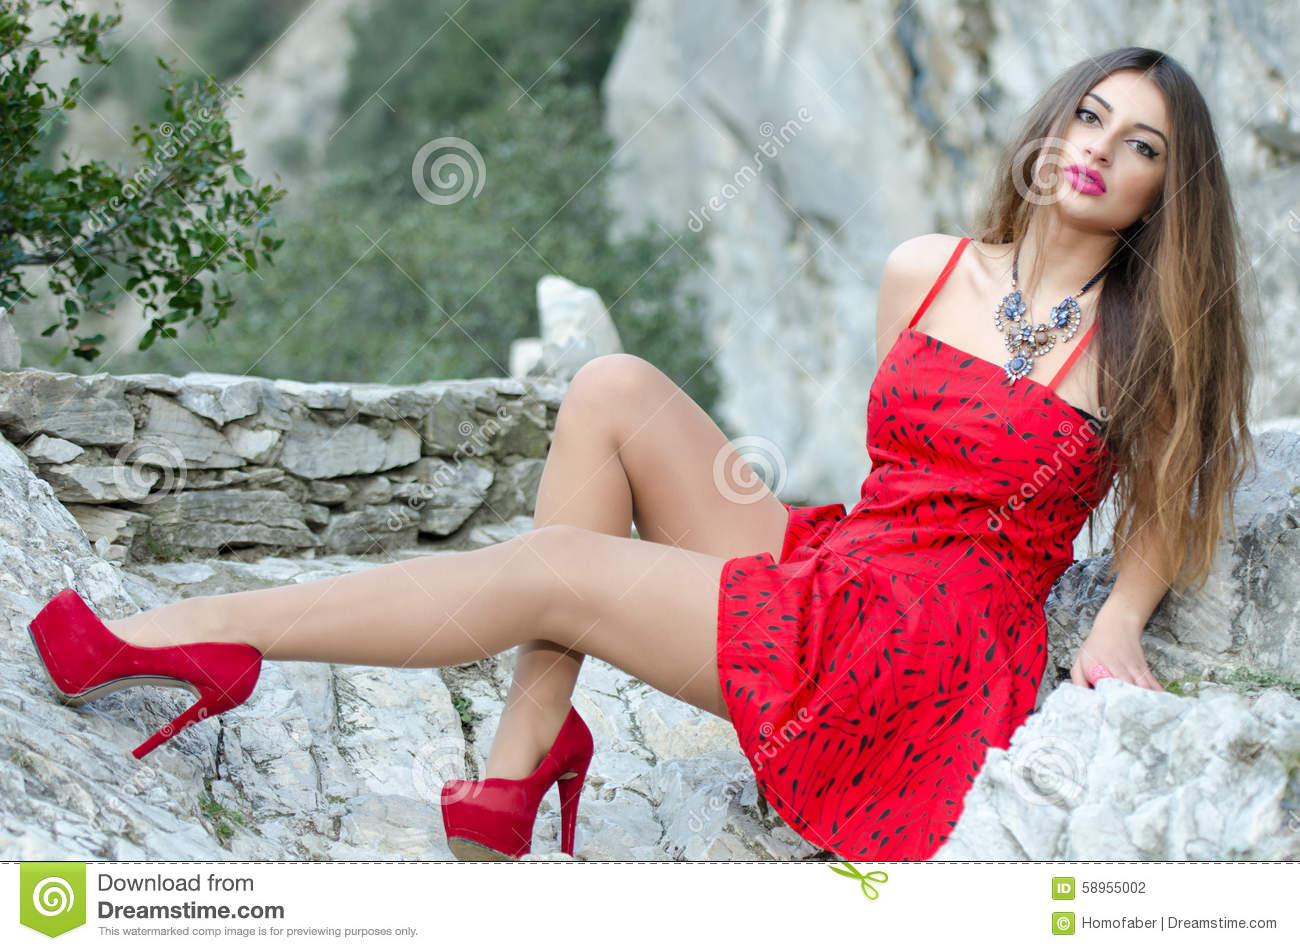 Woman In Red High Heels And Red Short Dress Stock Photo - Image ...